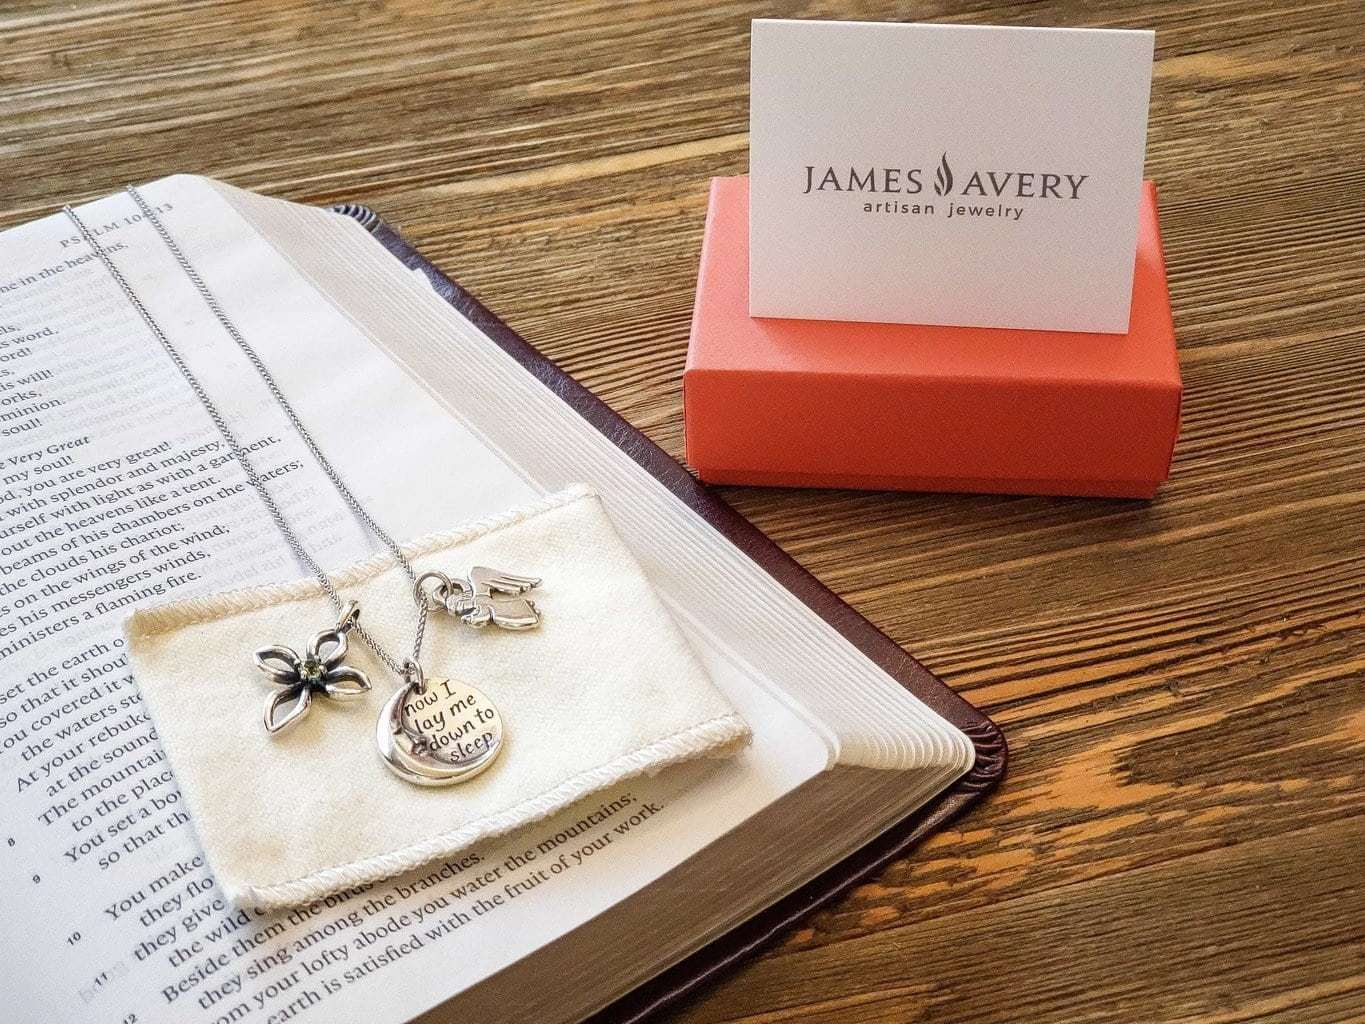 honoring the memories of loved ones, james avery jewelry